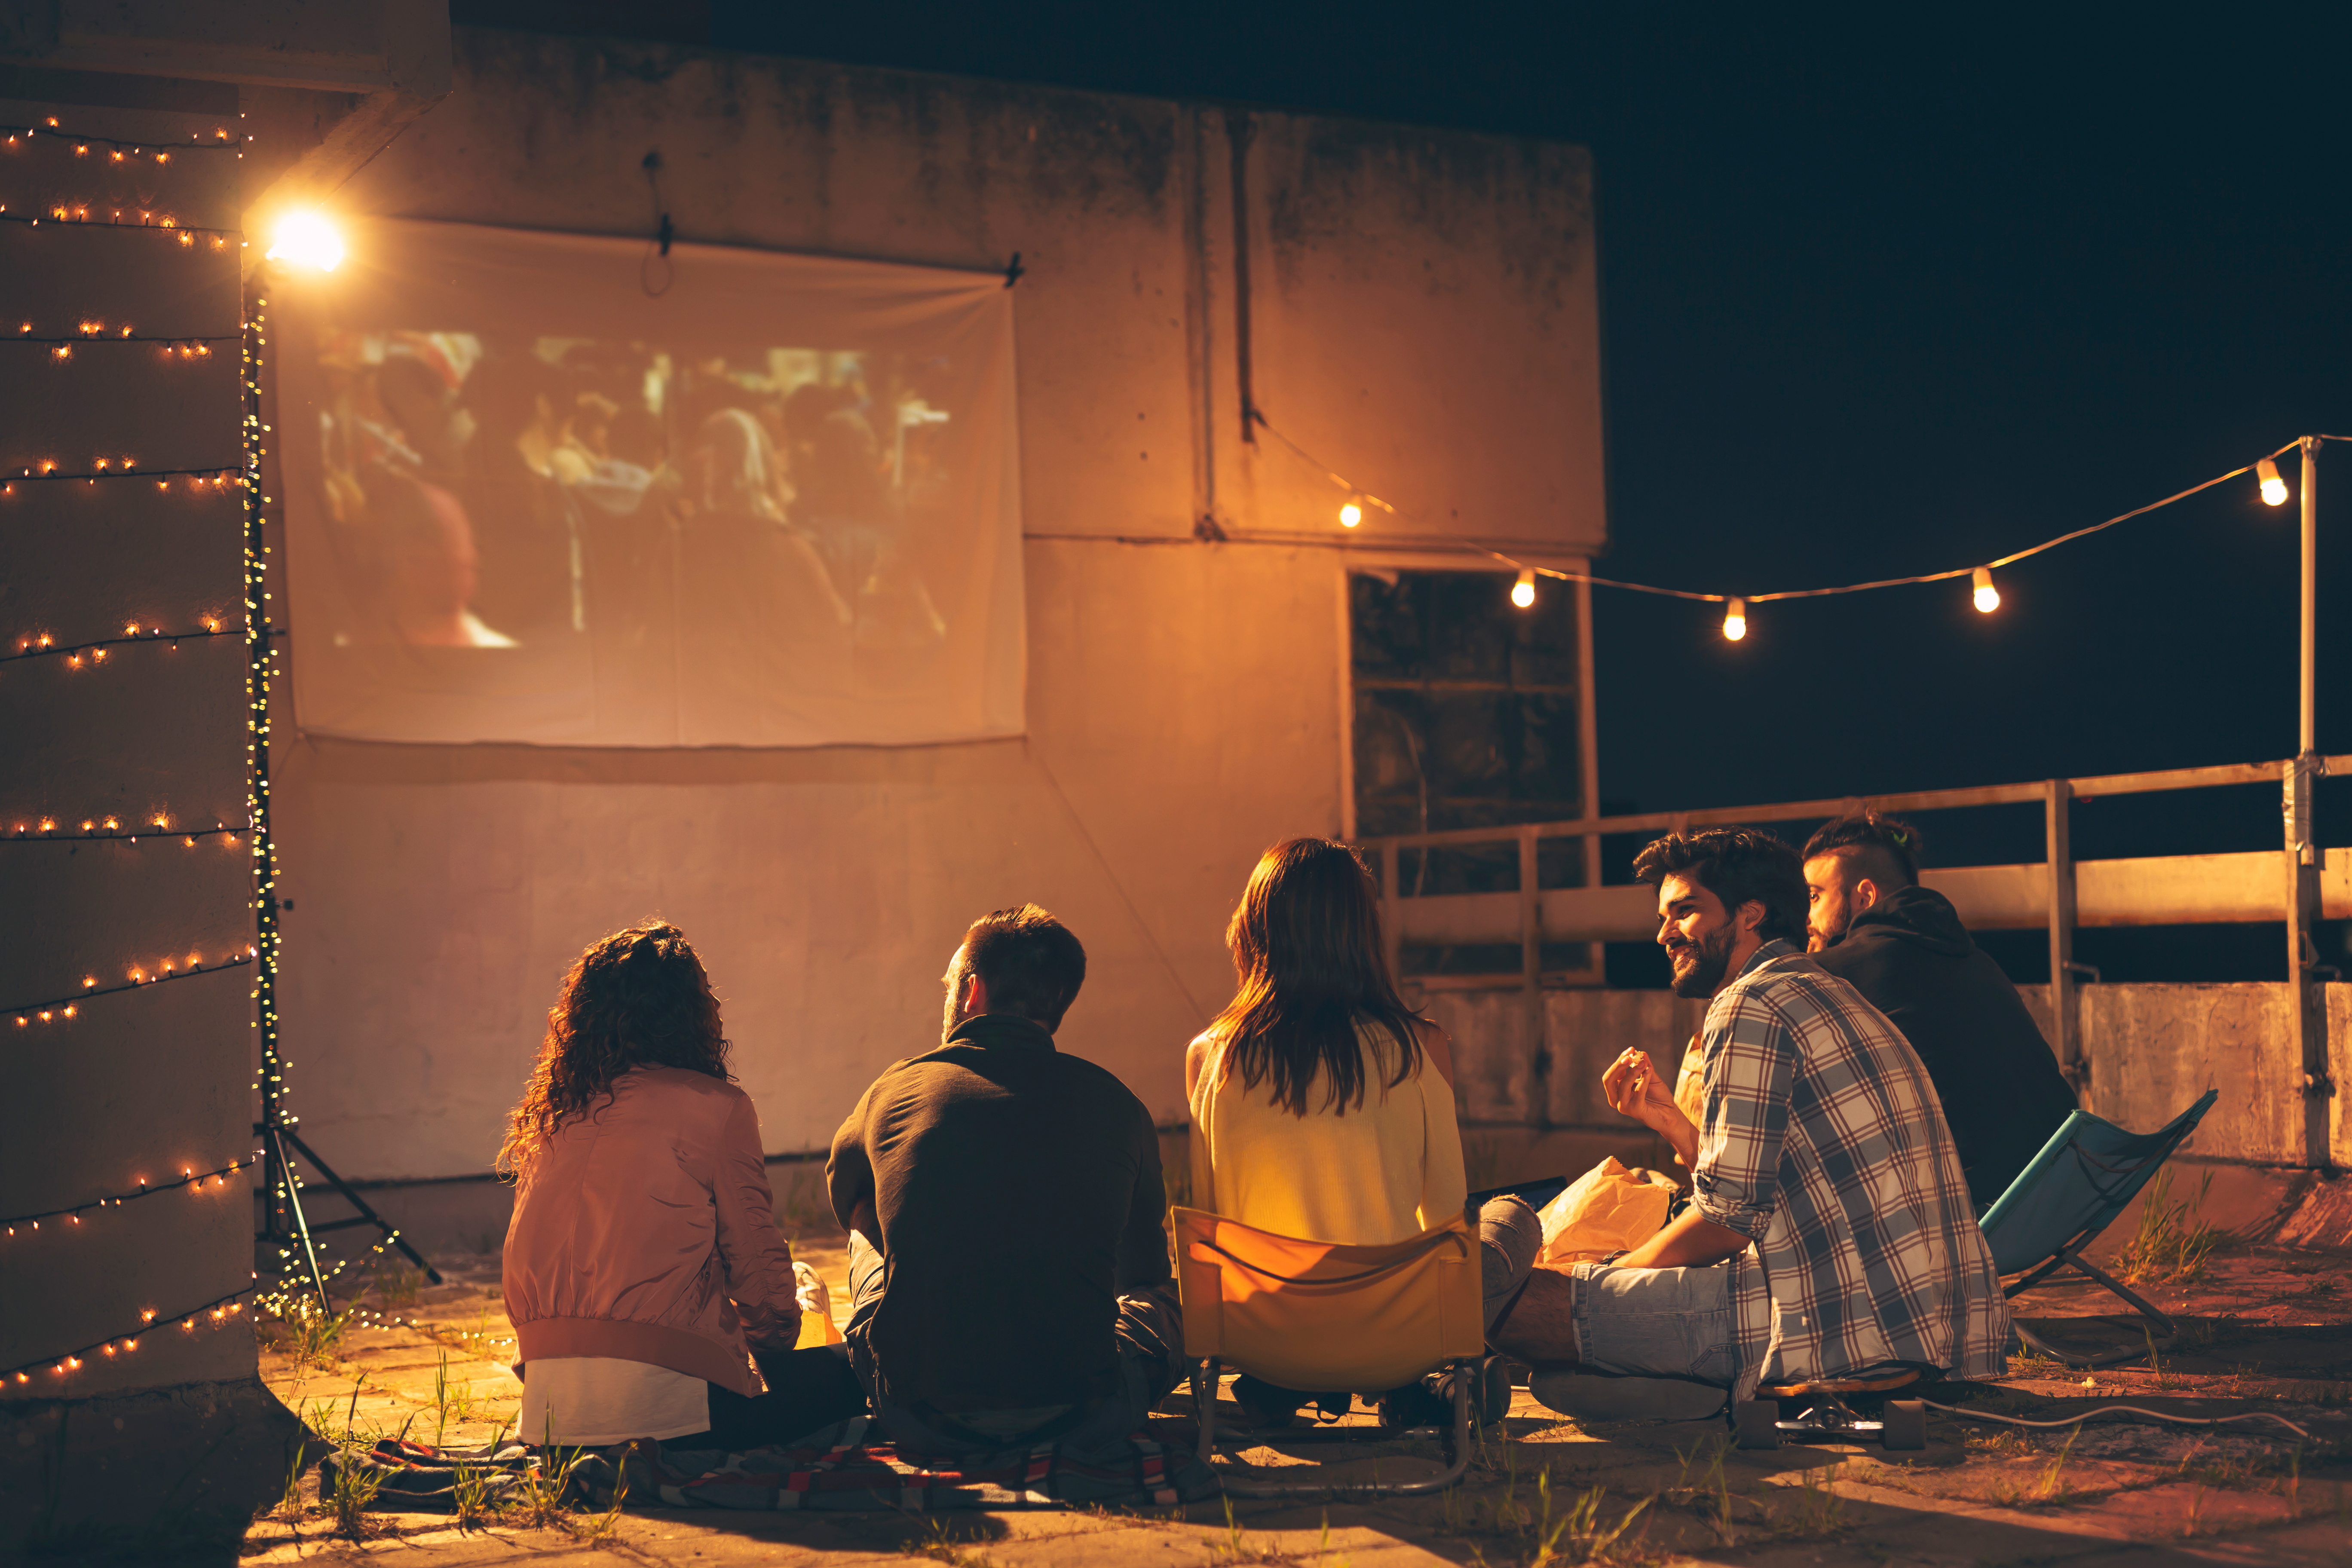 5 Best Outdoor Projectors to Stream Your Favorite Movies and Shows This Summer